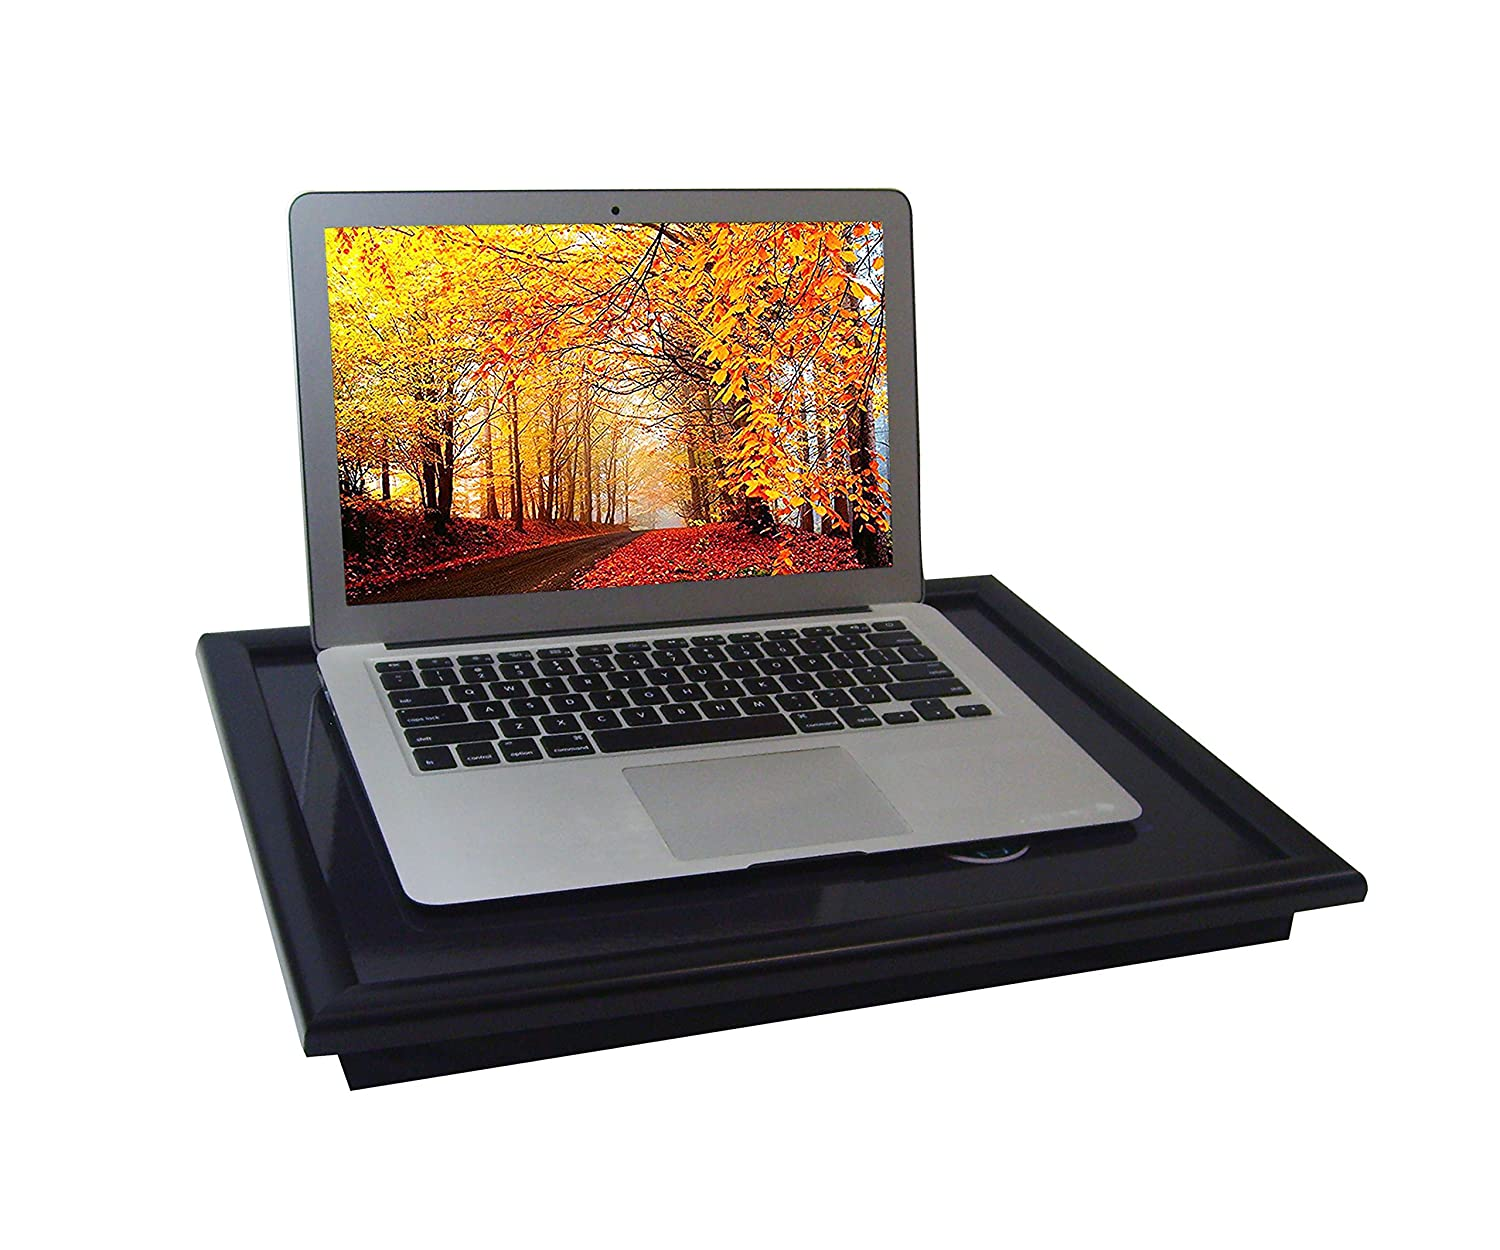 North Globe Lap Desk - Travel Padded Cushion Plus Wrist Rest and Extra Large Lap Tray - Light Weight and Portable Lap Tray - Essential Desk Organizer for Kids, Adults, Students and Office Spaces North Globe Sales